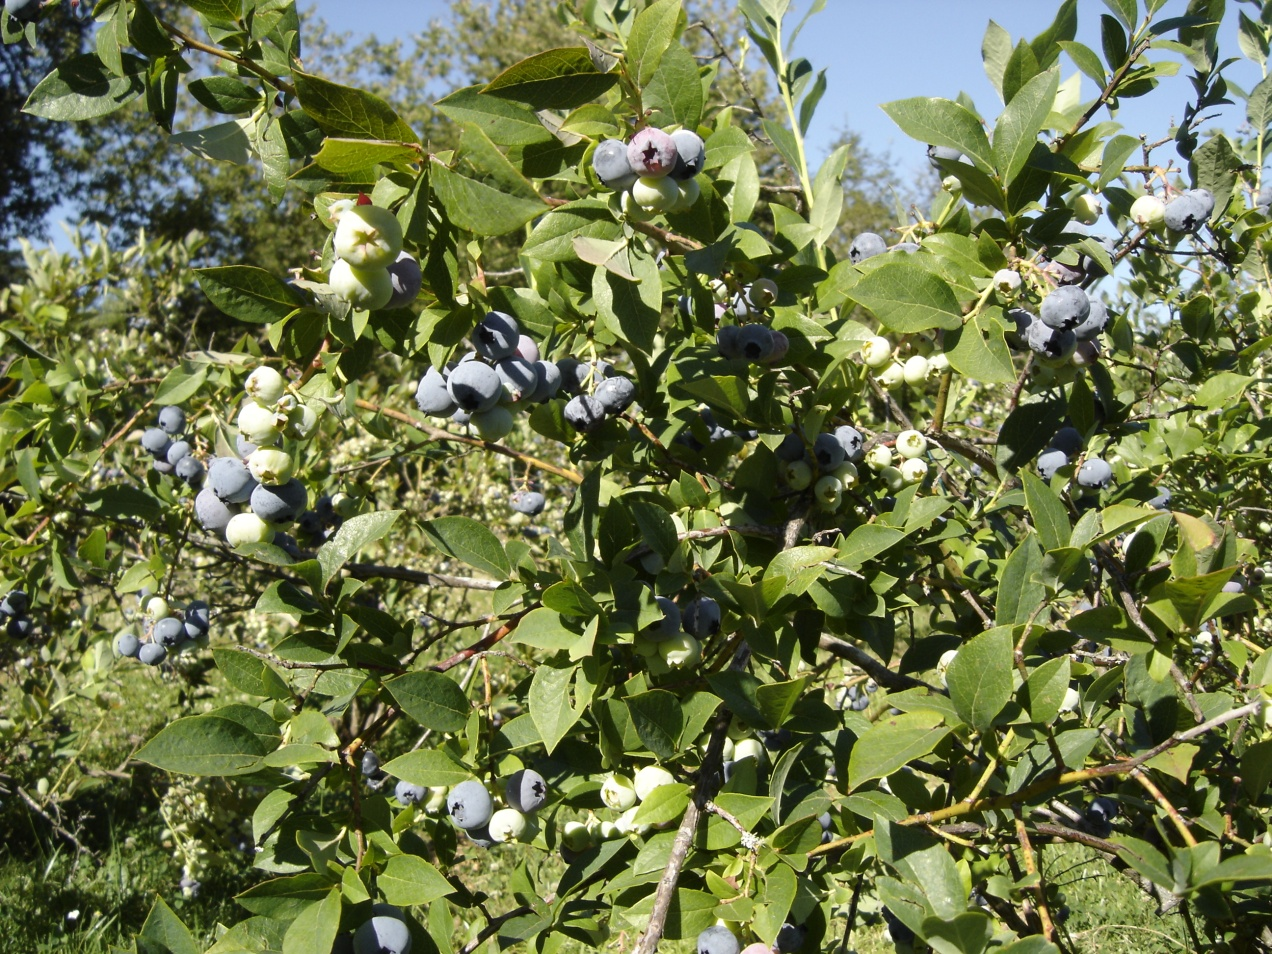 Ripening blueberries, waiting to be picked.  The birds are also waiting for these tasty blue gems to ripen.  The race is on!